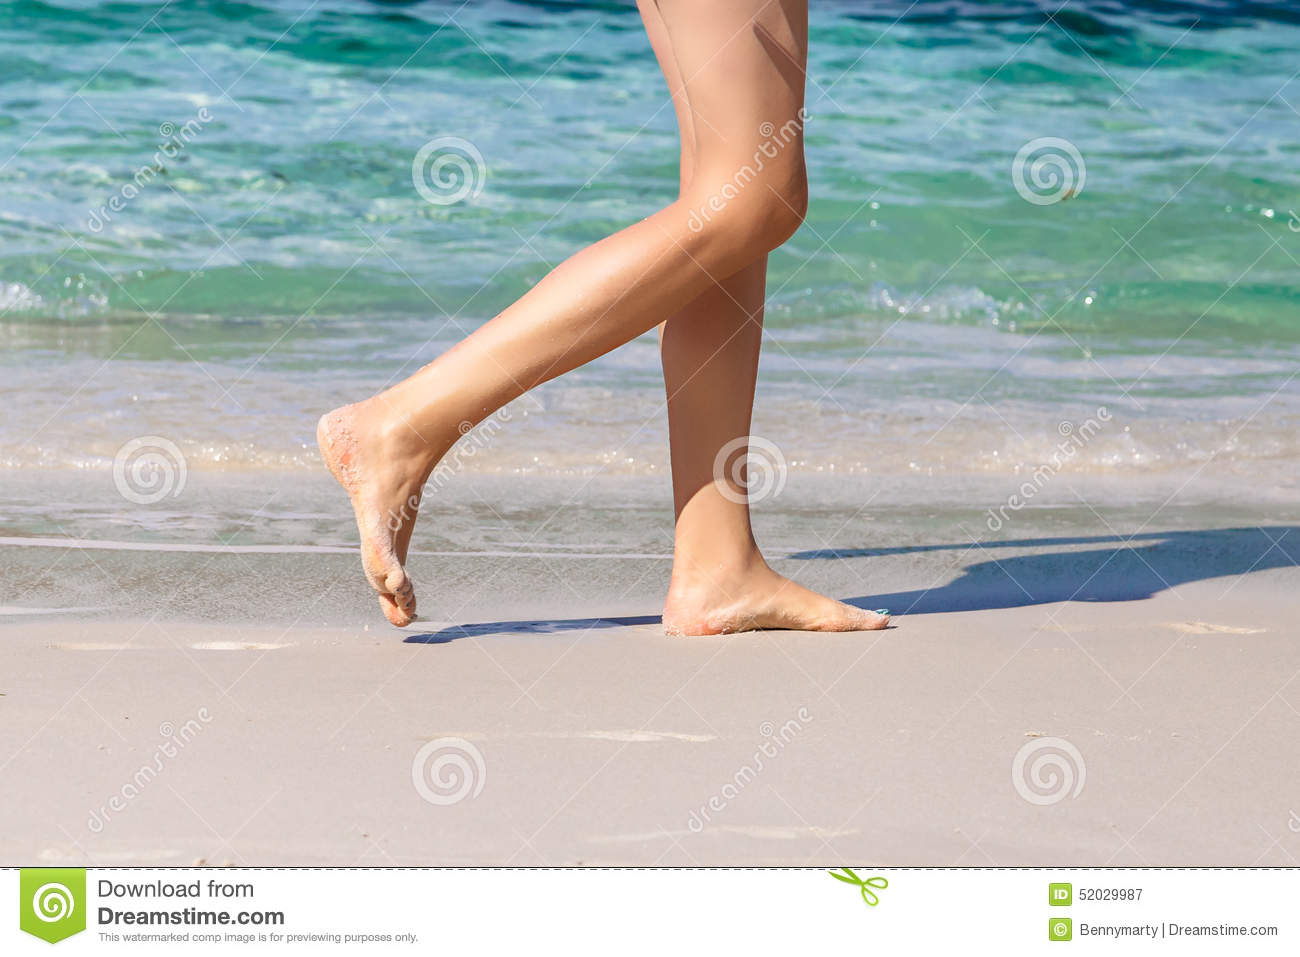 The only girl naked at the beach quite good